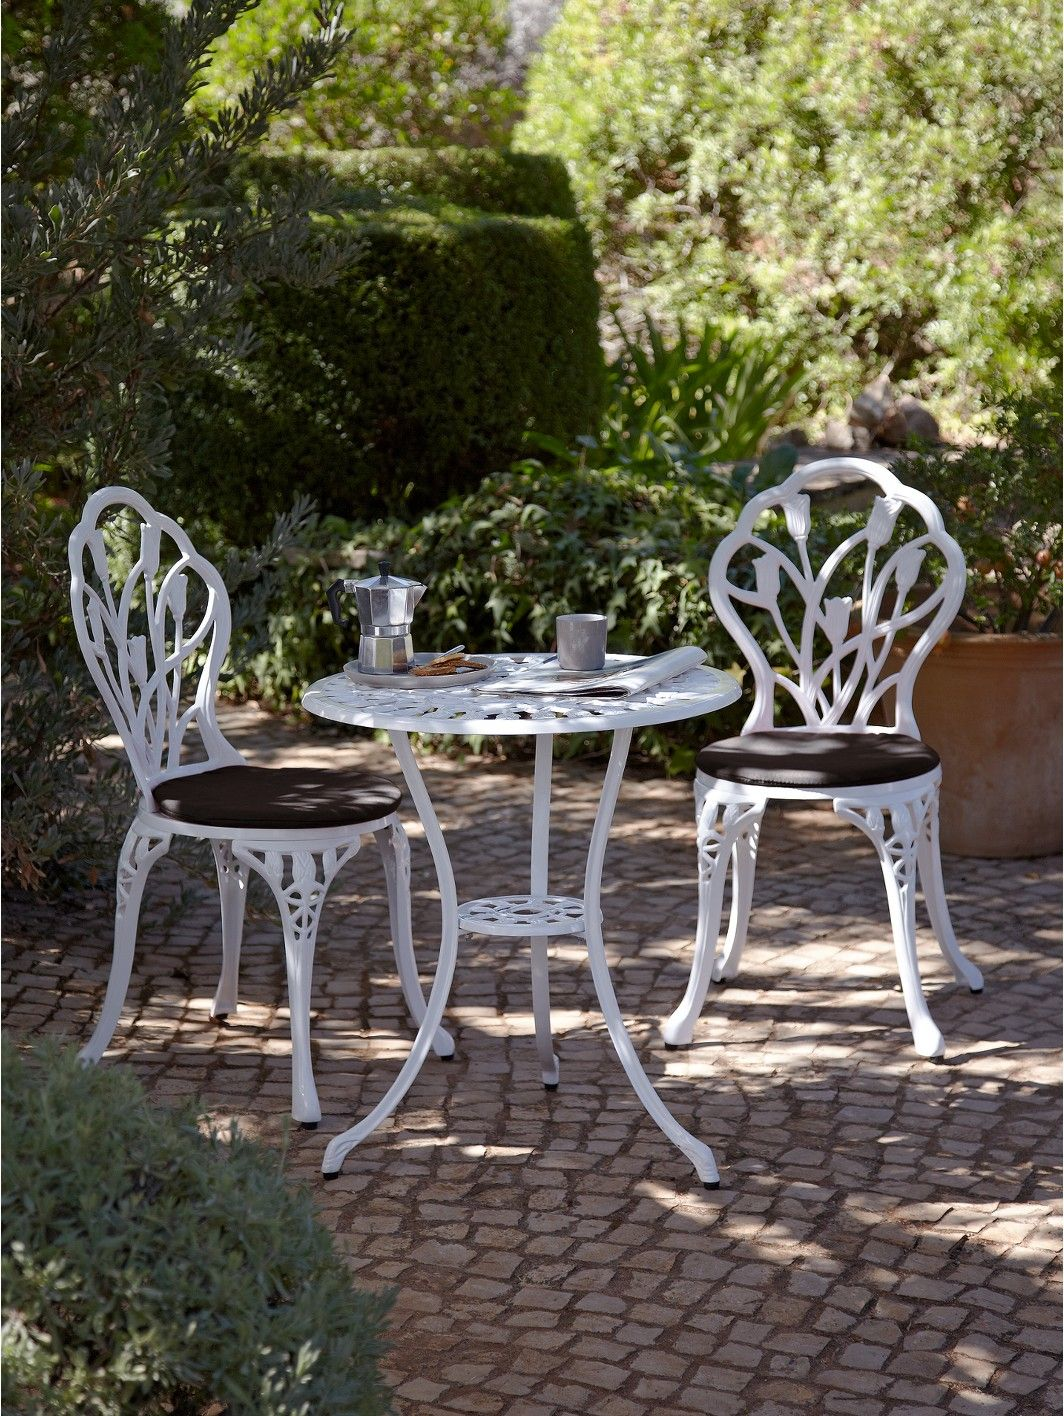 Isme Becomes Porch Furniture Outdoor Furniture Sets Outdoor Decor